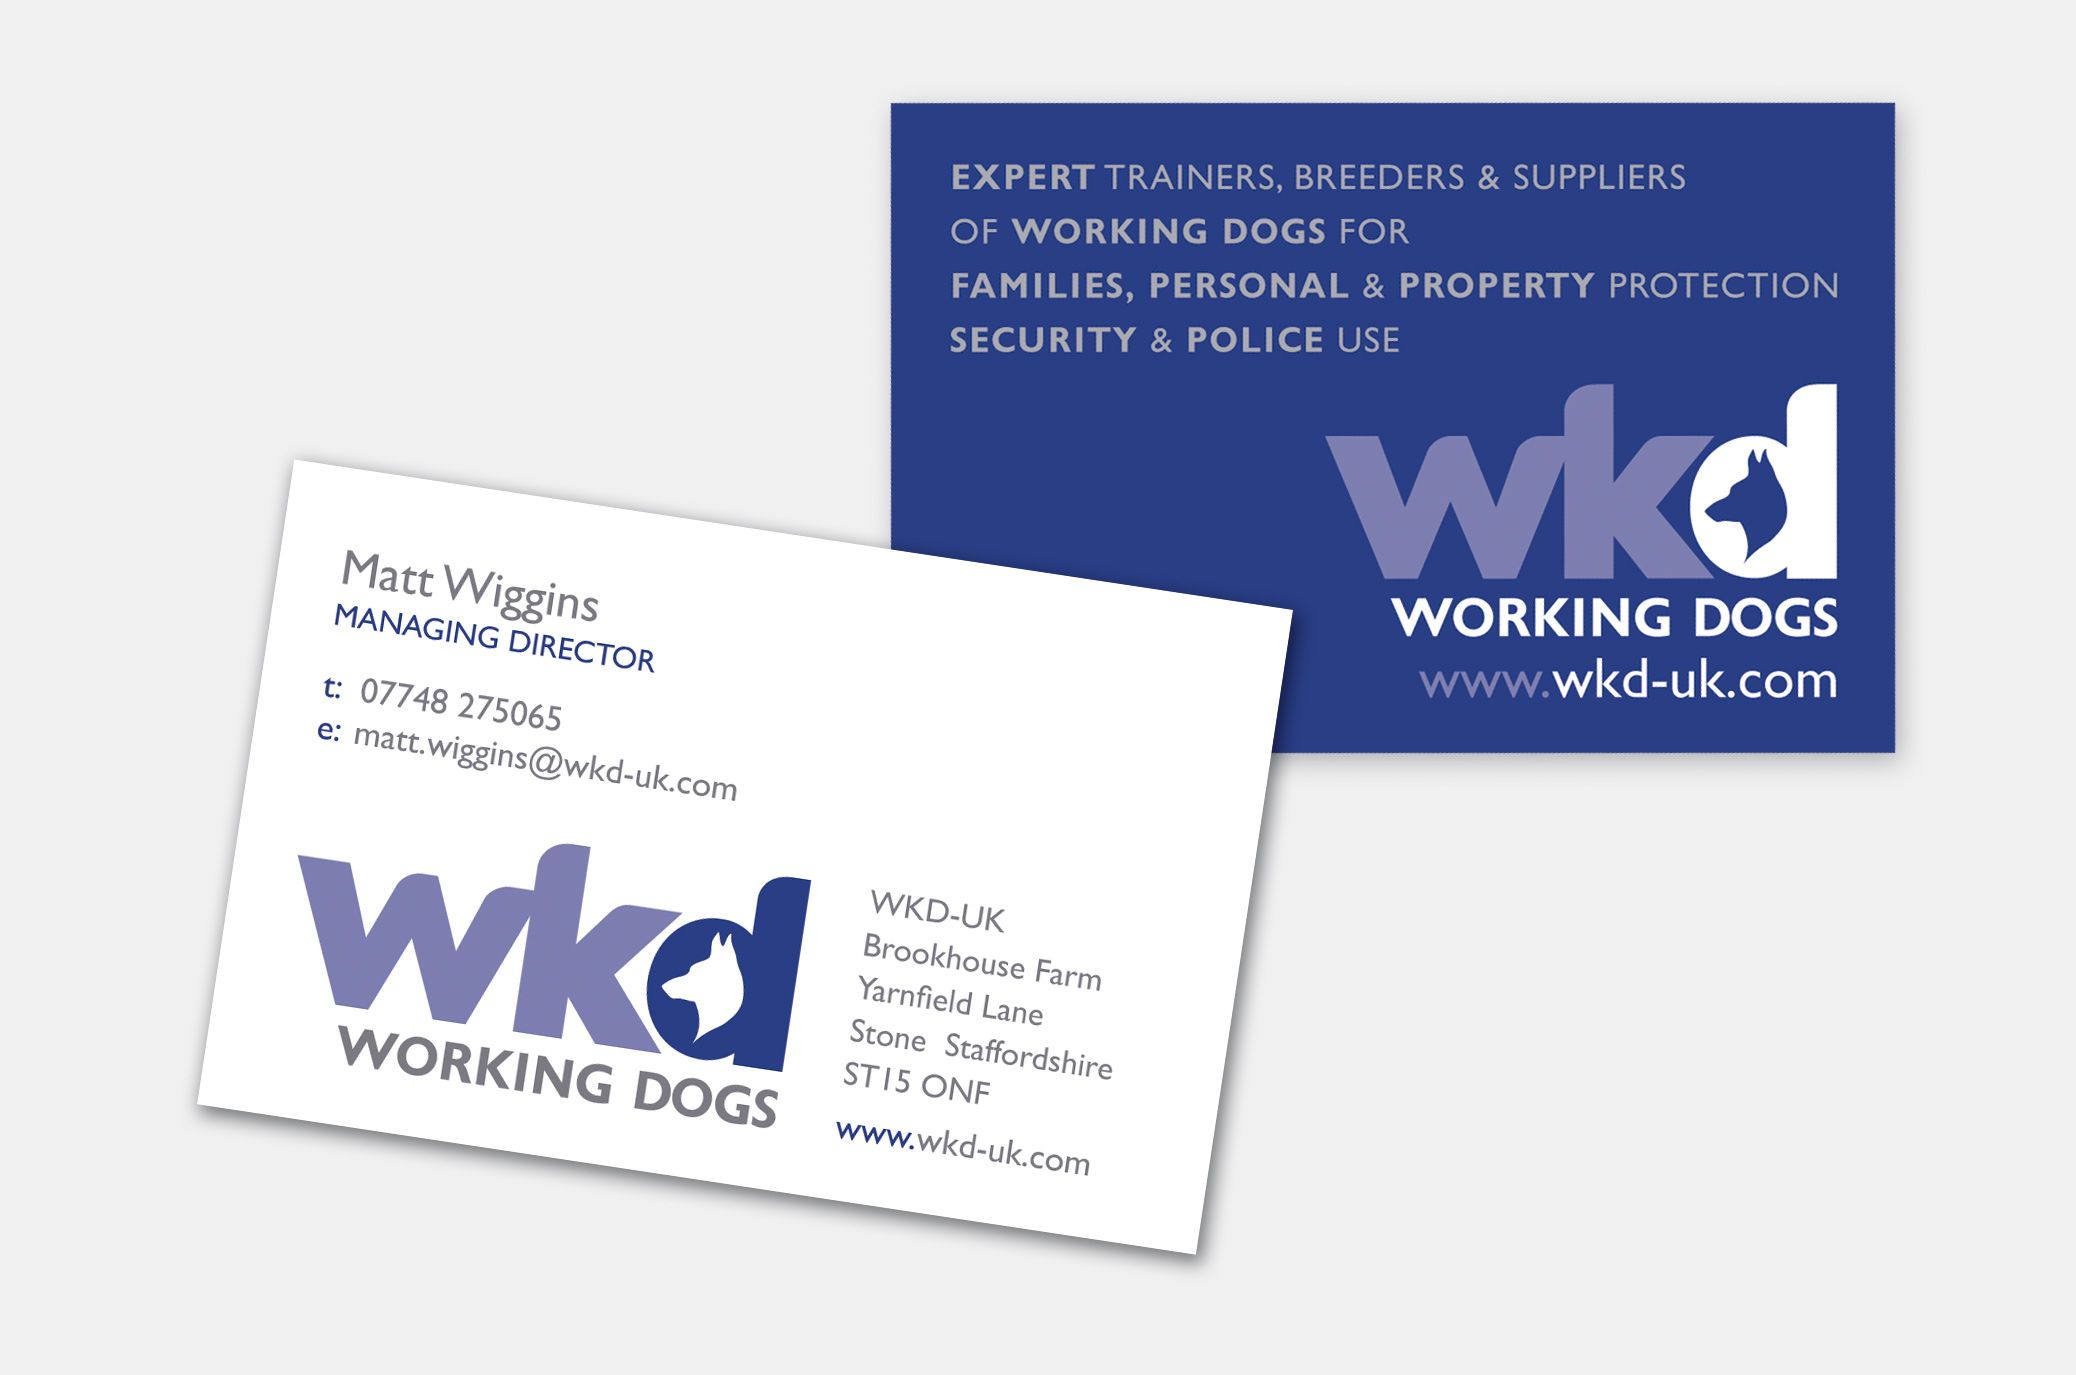 Business cards from working dog trainers, suppliers and breeders ...